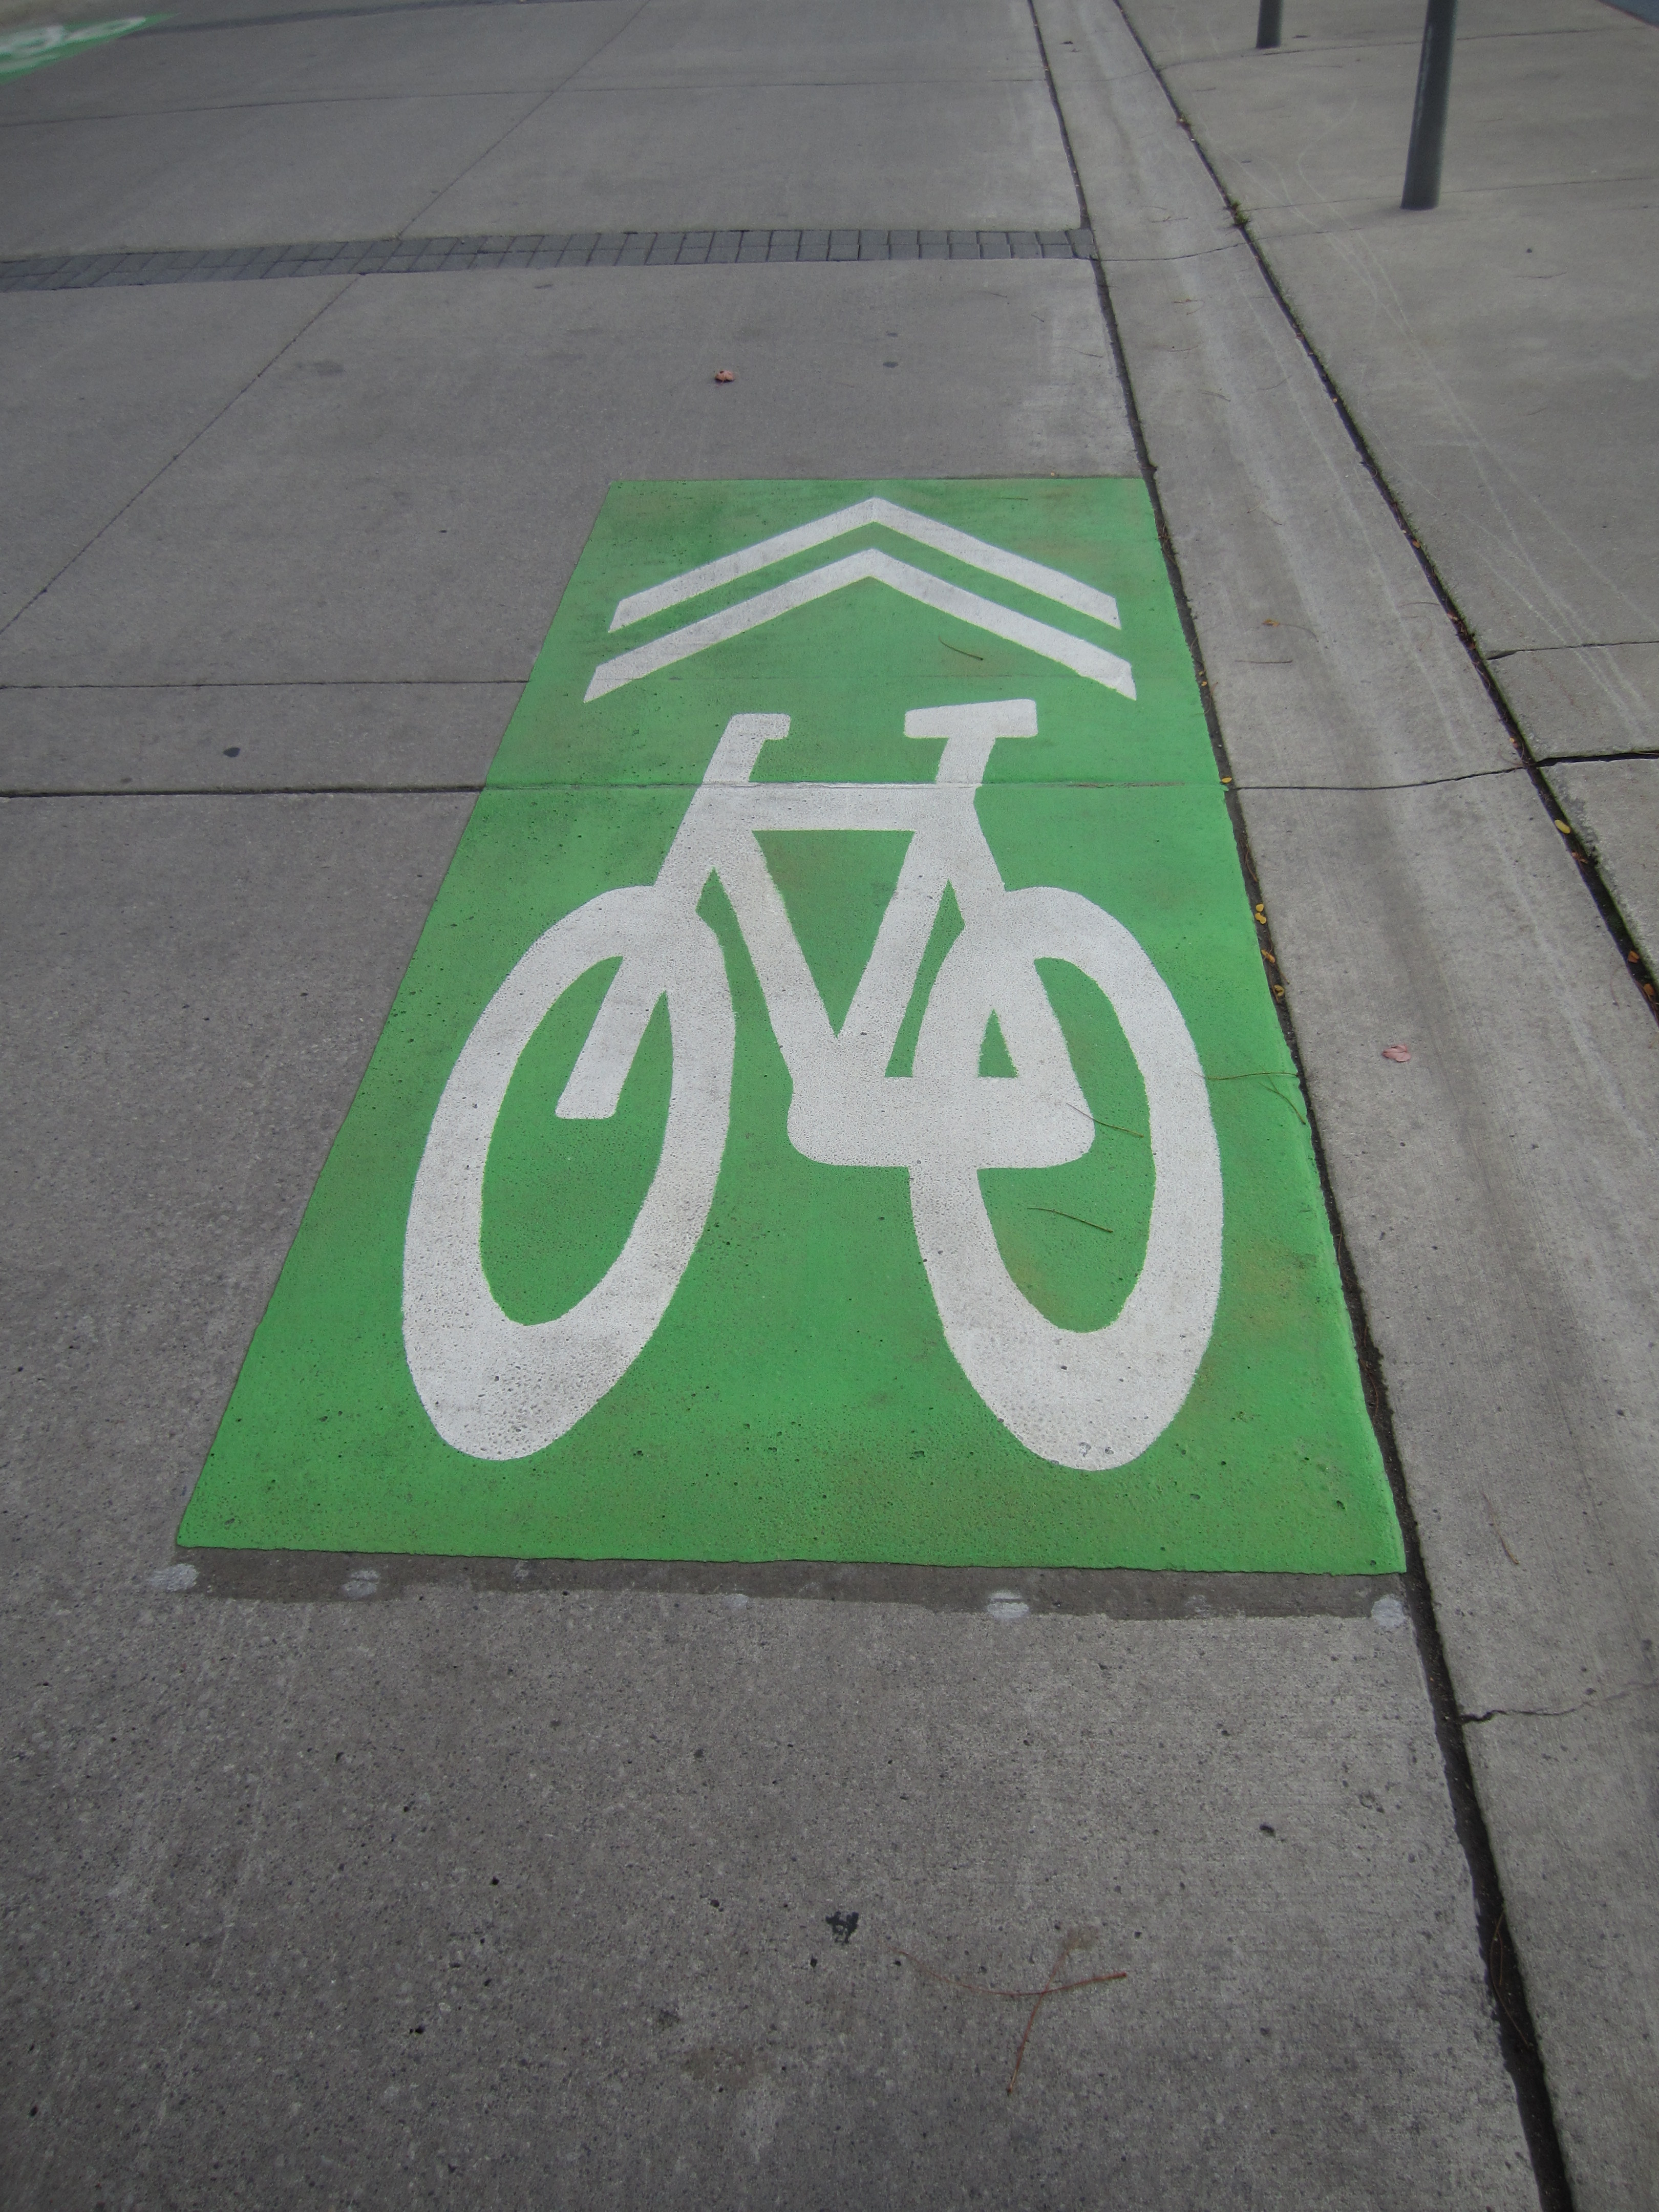 a picture of a white painted bike symbol with double arrows ontop of a green square background